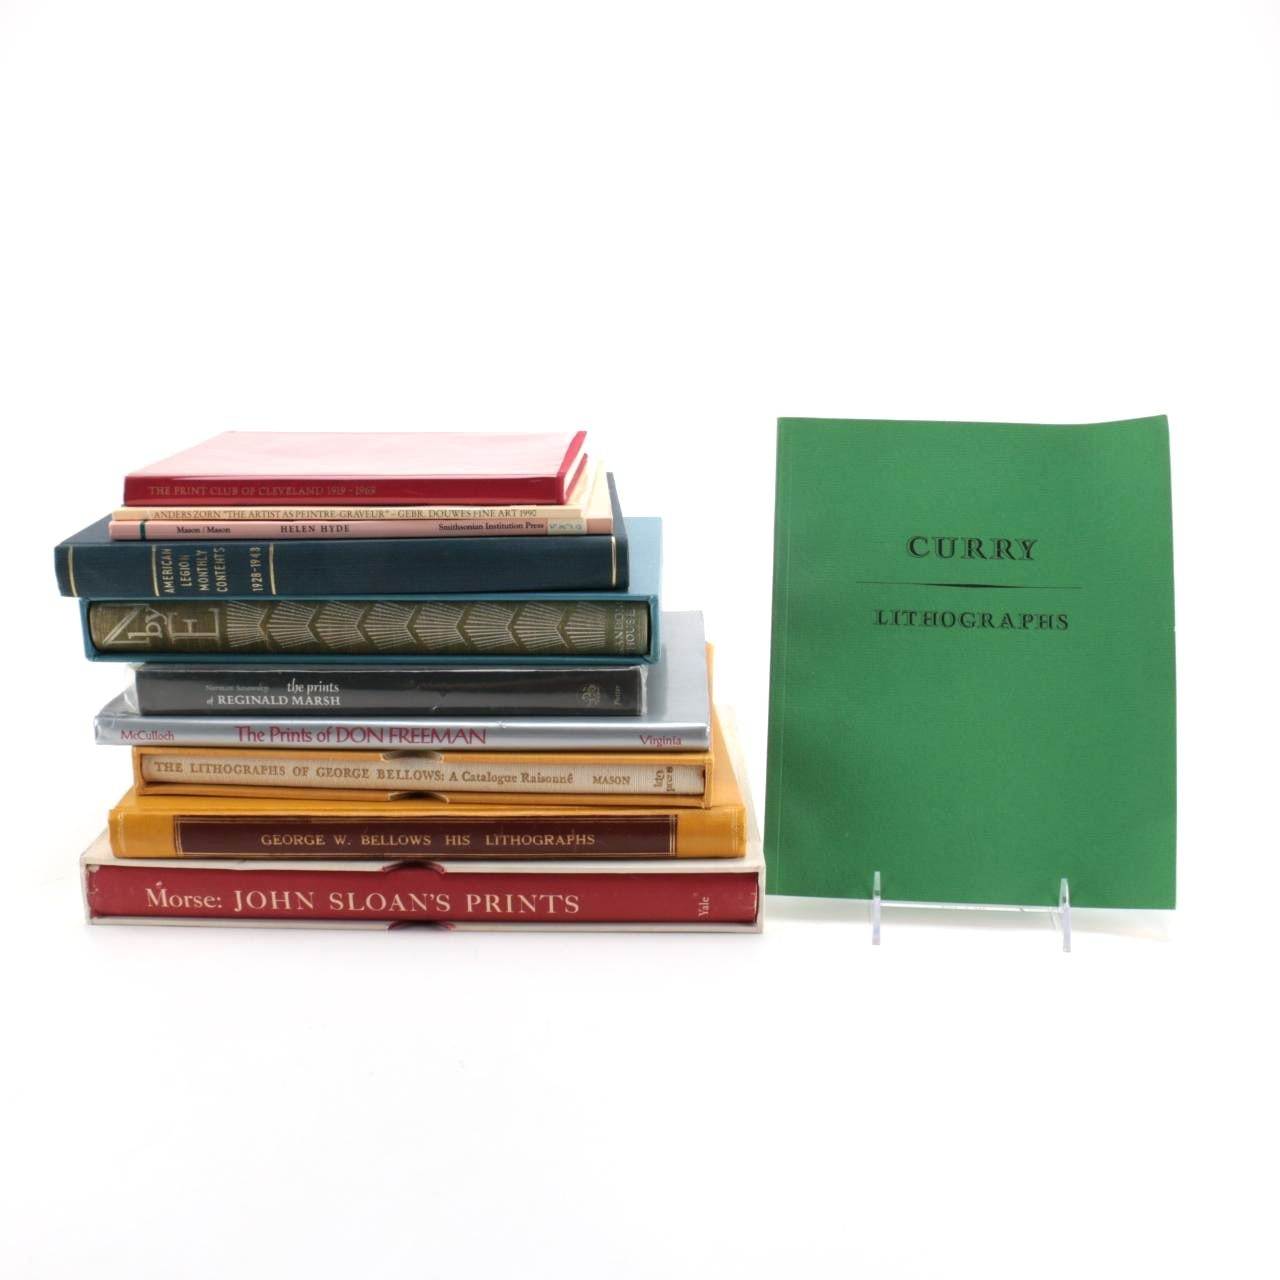 Books Featuring Lithographic Arts